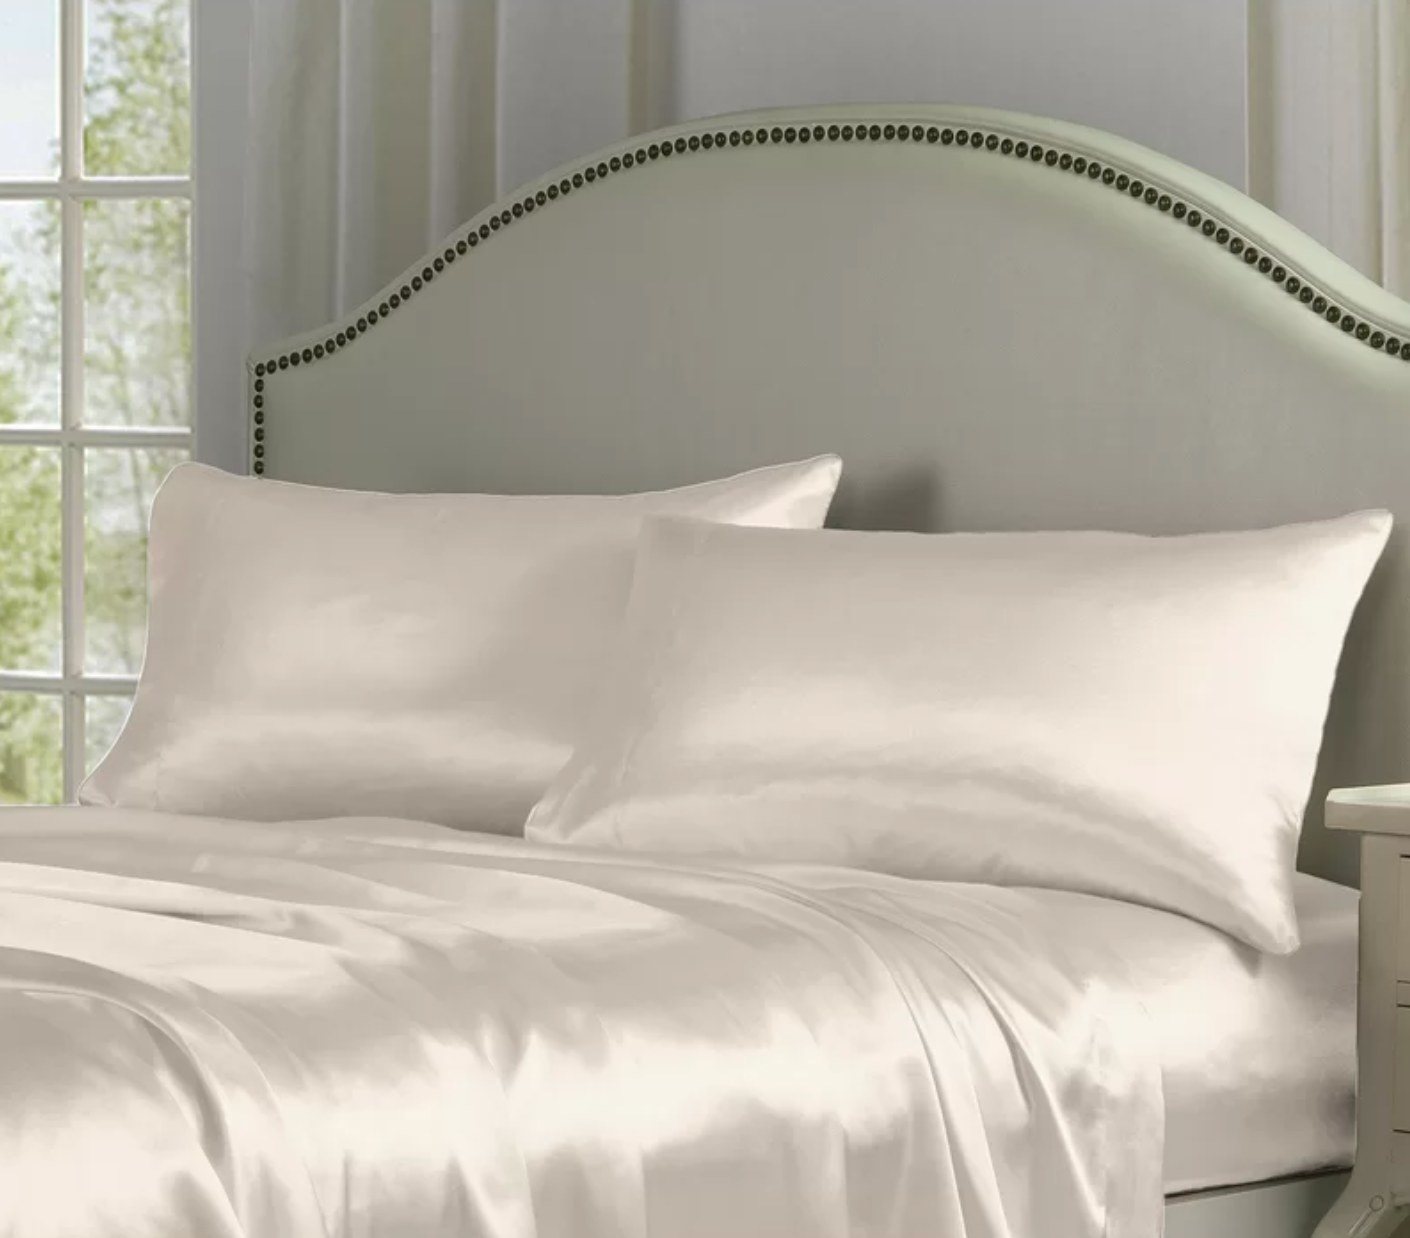 The satin sheet set in ivory